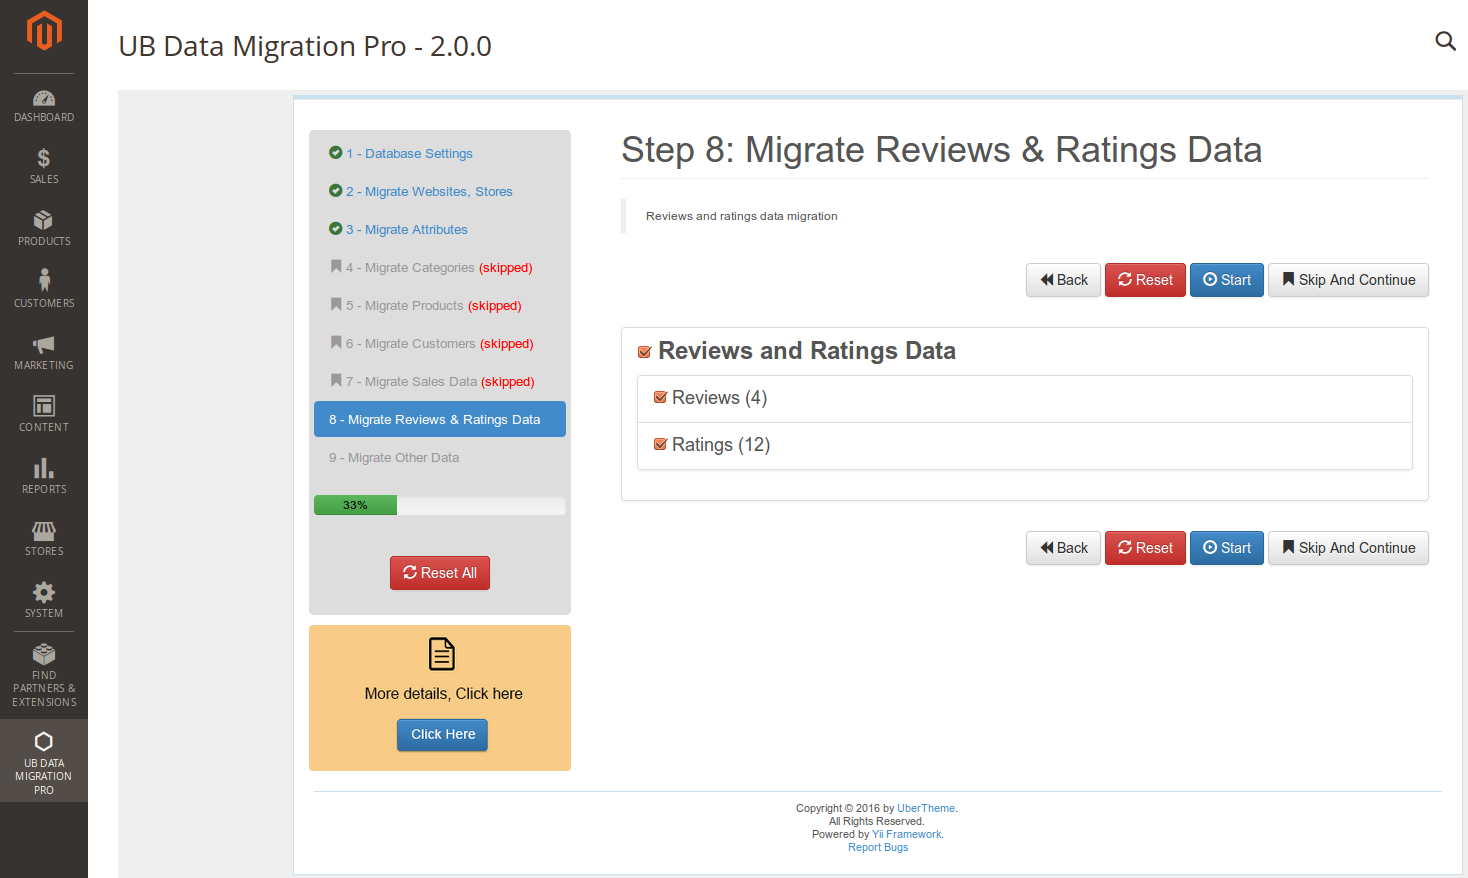 Step 8 - Migrate Reviews Ratings